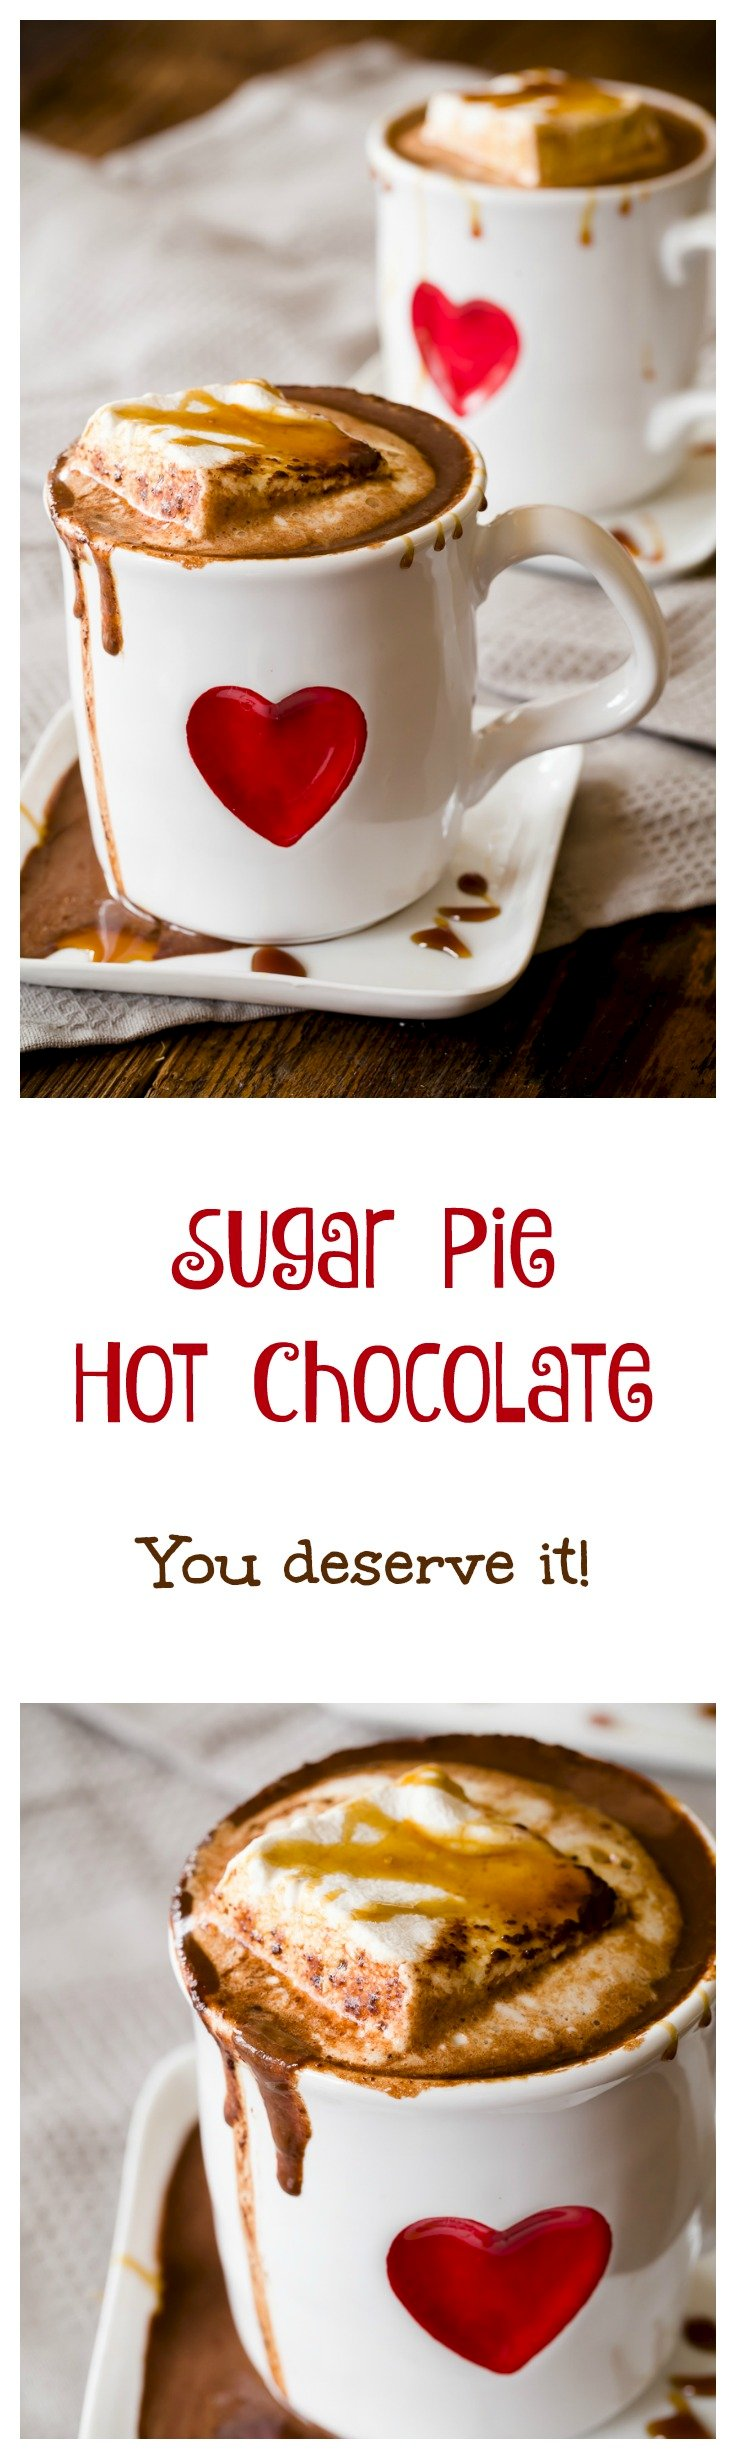 Sugar Pie Hot Chocolate